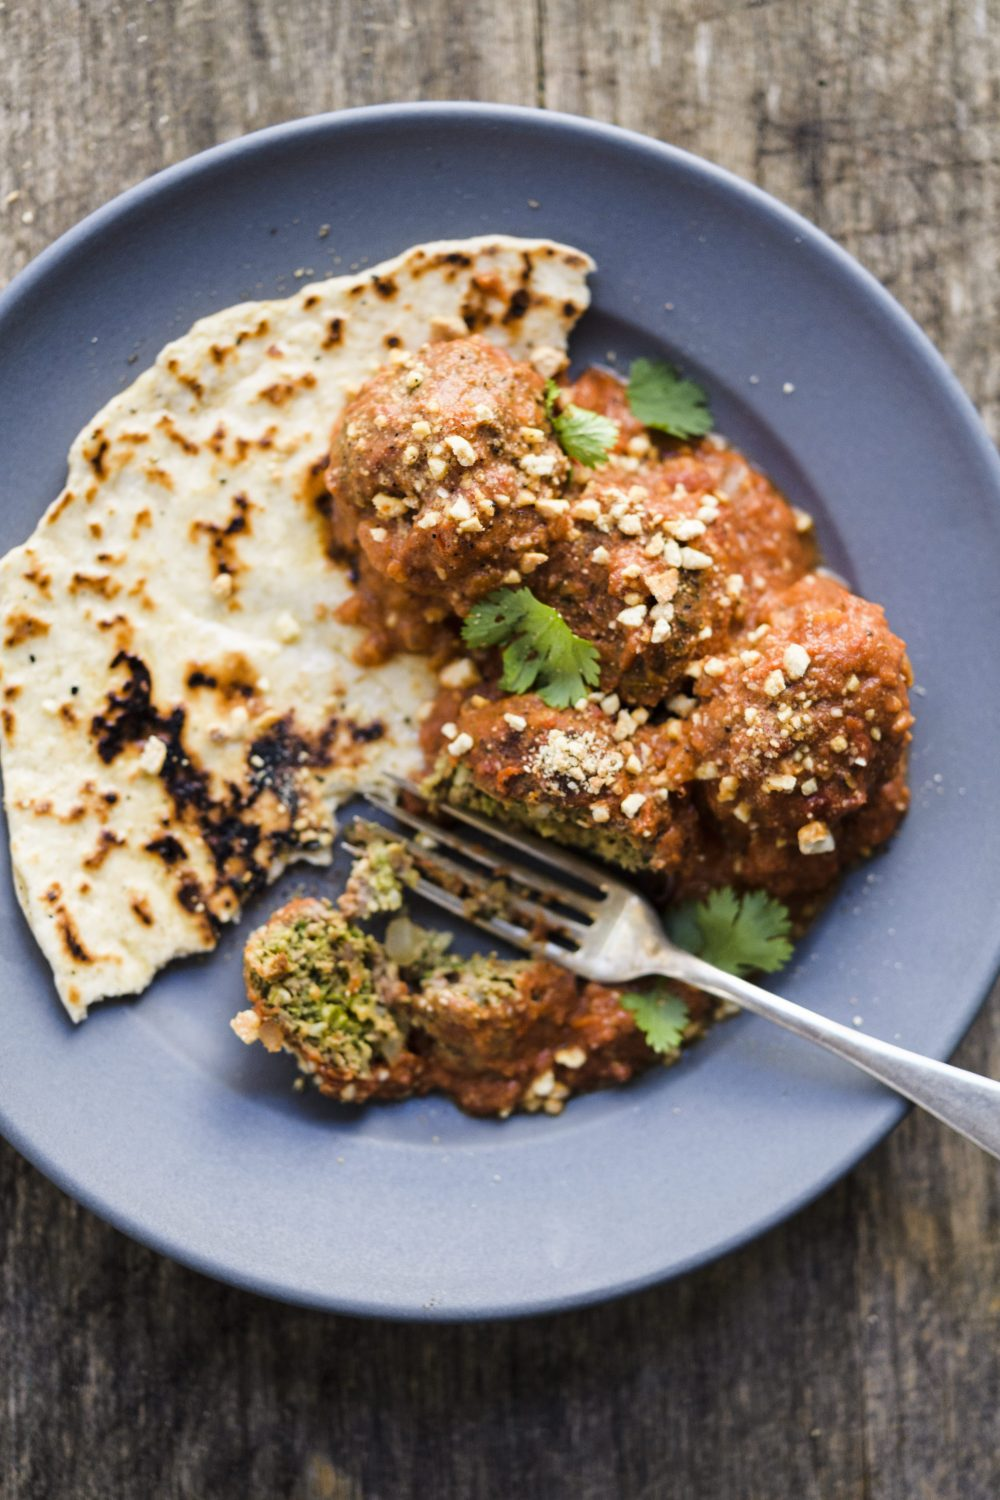 Cashew-Coconut Meatballs with Creamy Spiced Tomato Sauce (Tuesday Nights)